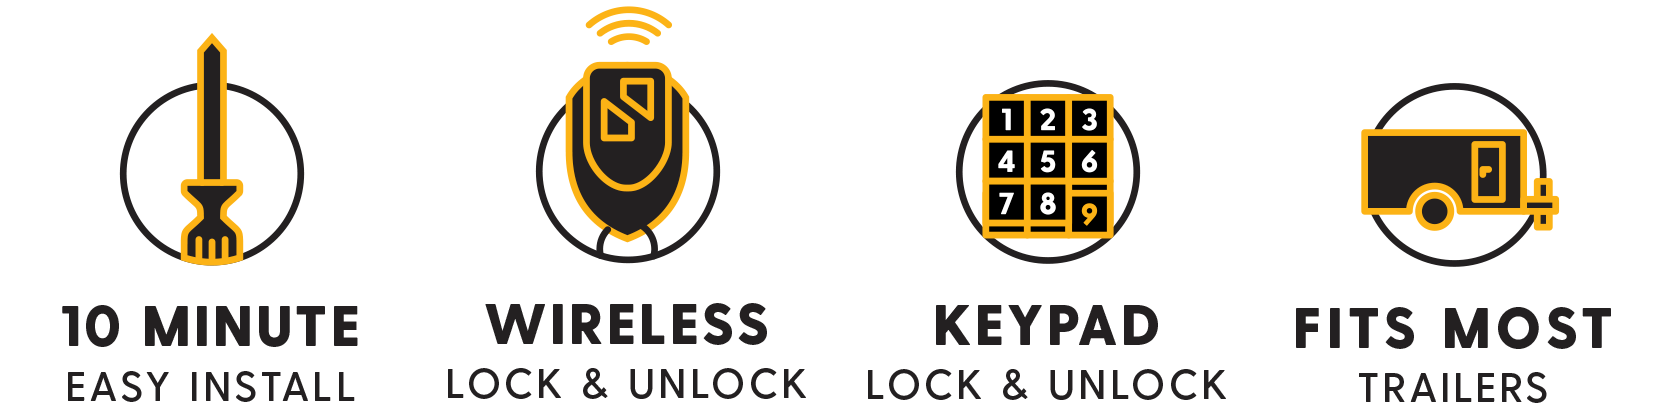 RVLock Features